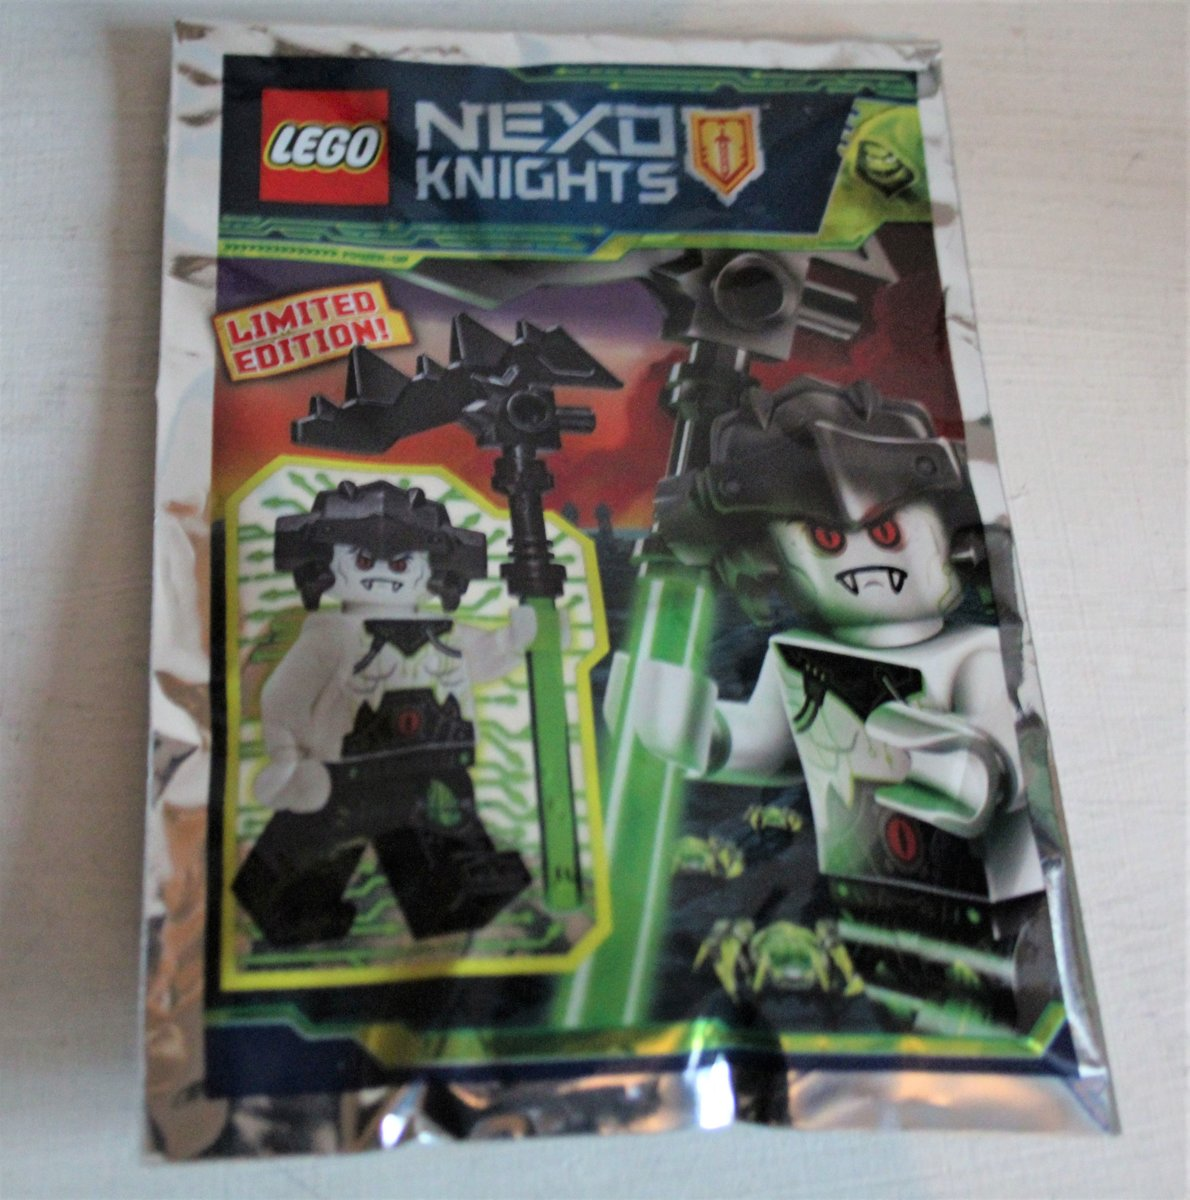 Lego Nexo Knights minifigure Rock Monster (polybag)